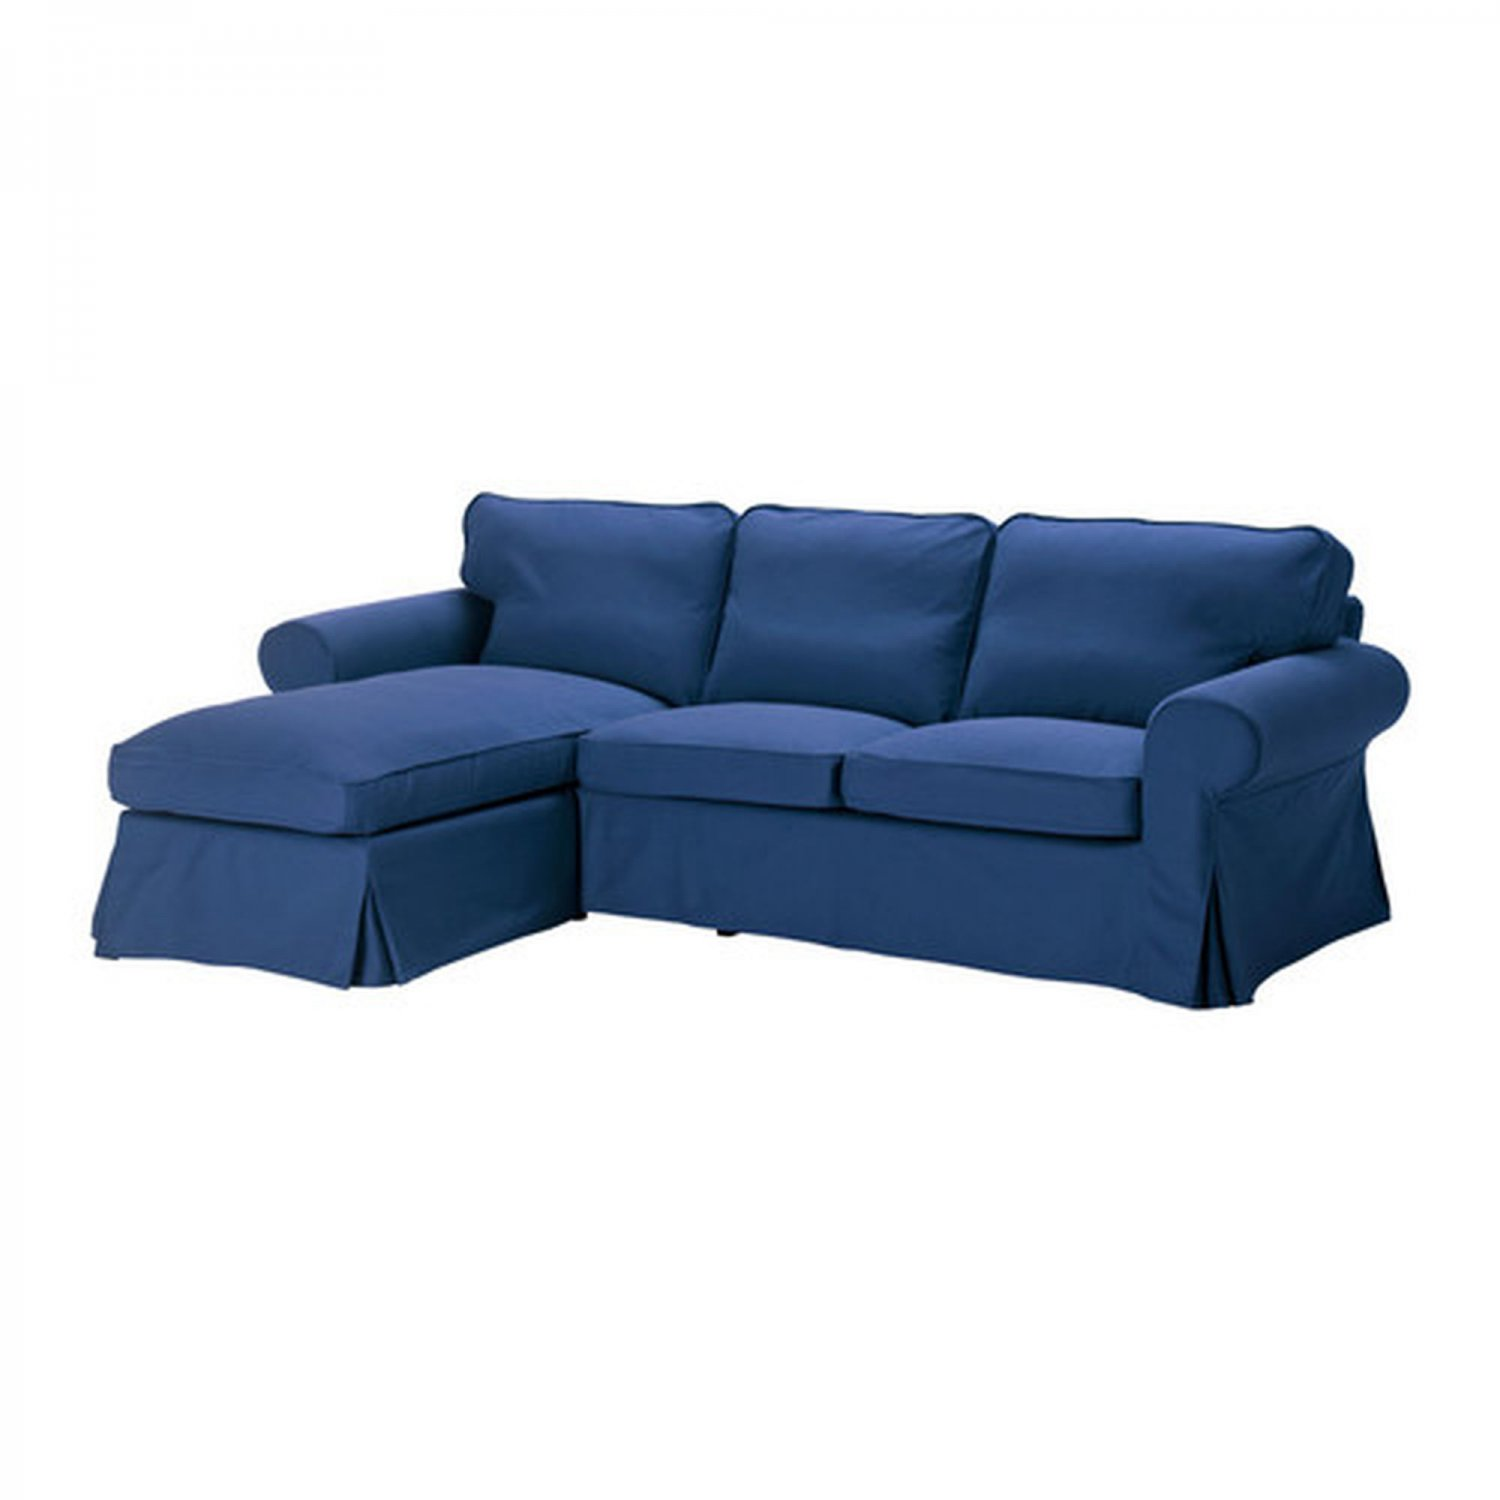 Ikea ektorp loveseat with chaise lounge cover slipcover idemo blue Red sofas and loveseats